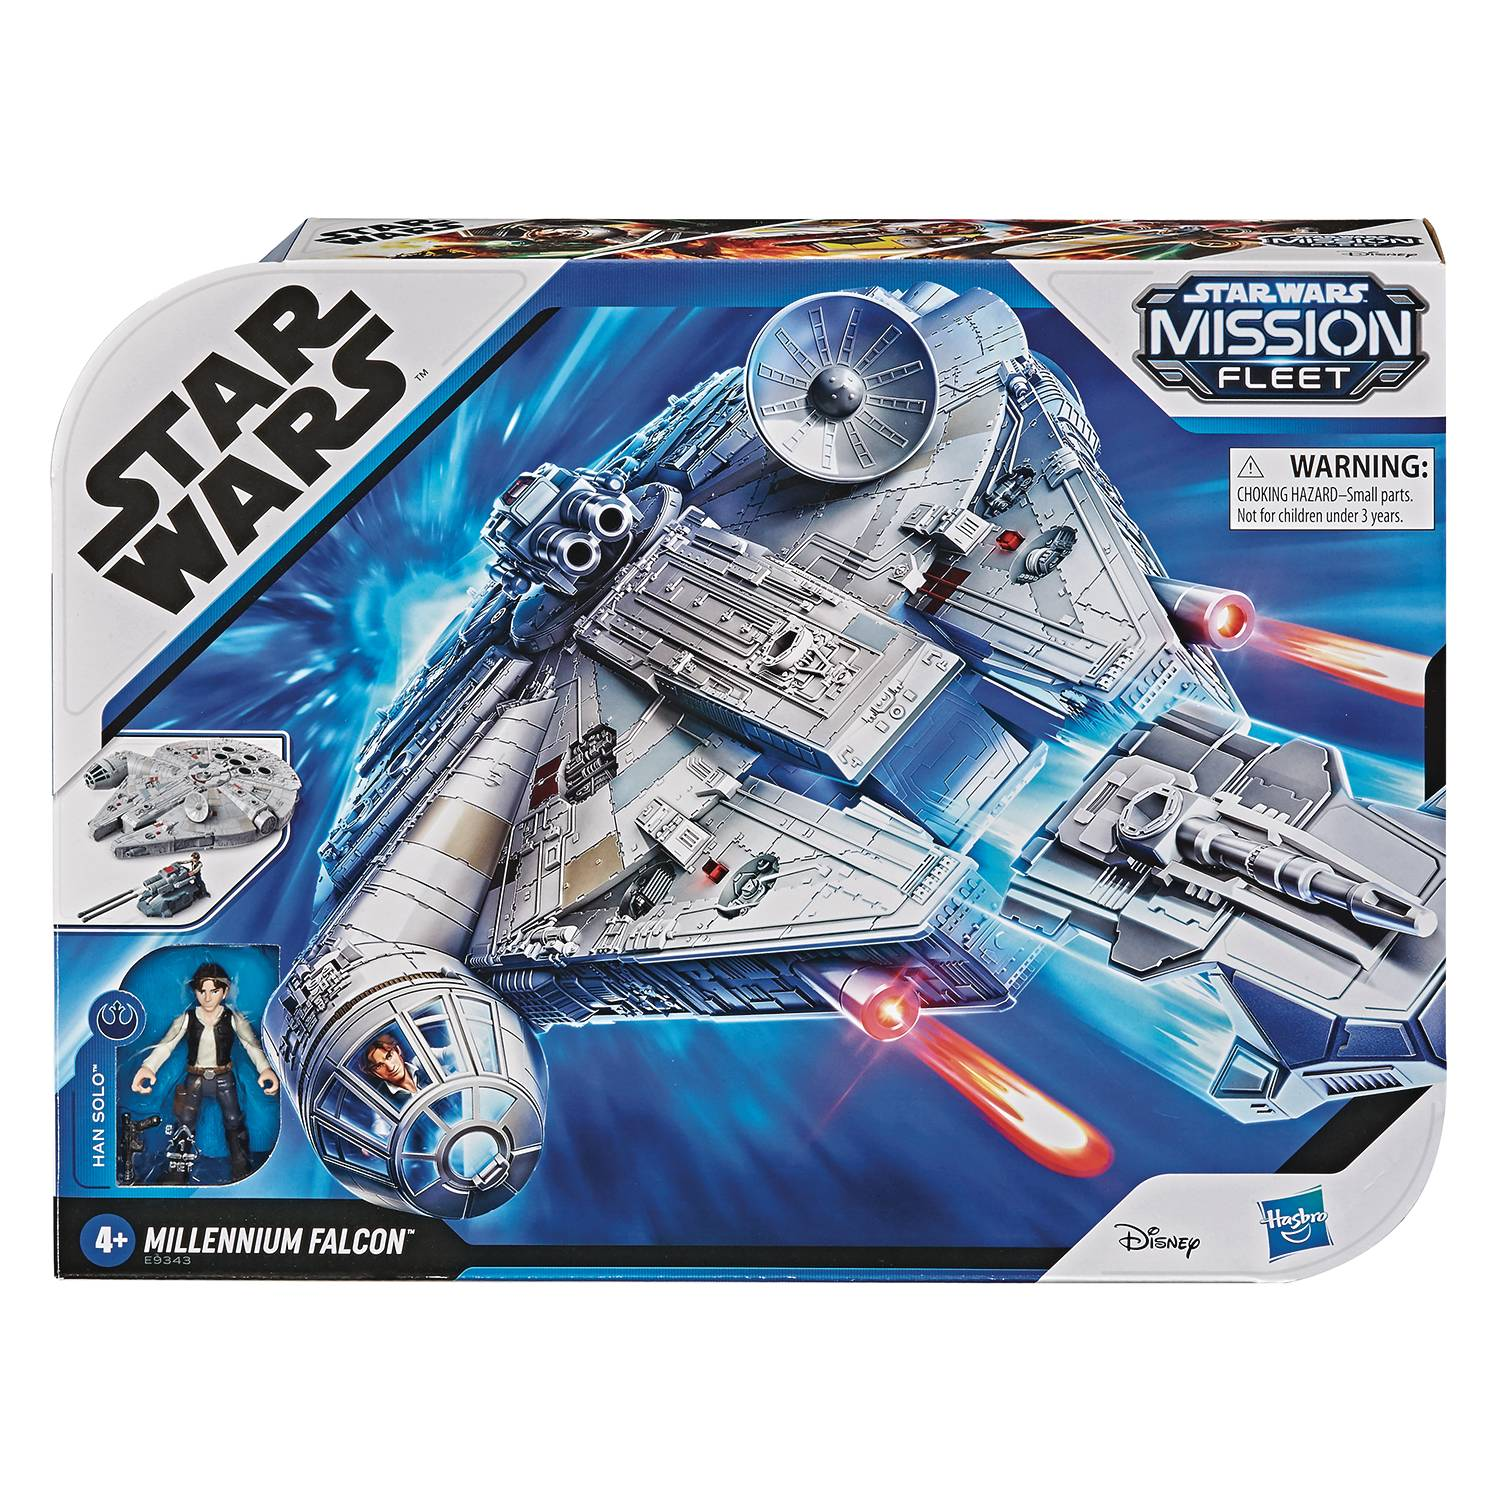 SW MISSION FLEET MILLENNIUM FALCON CS